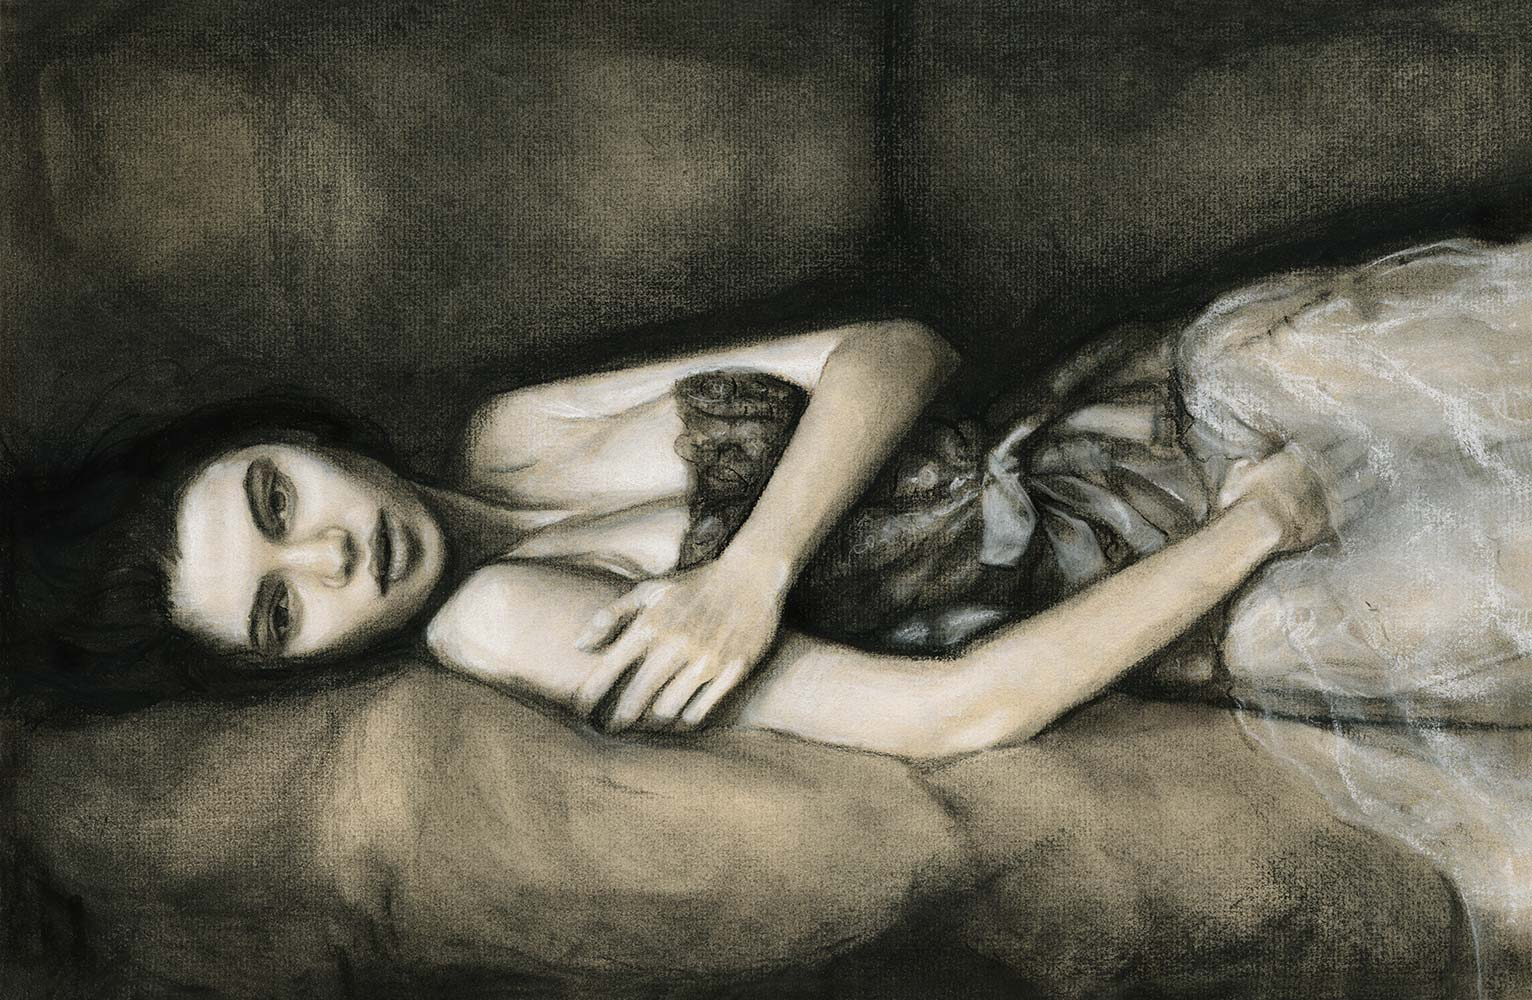 A beautiful girl's Reclinging on a couch full body in dress Art by Fashion Ilustrator Danny Roberts